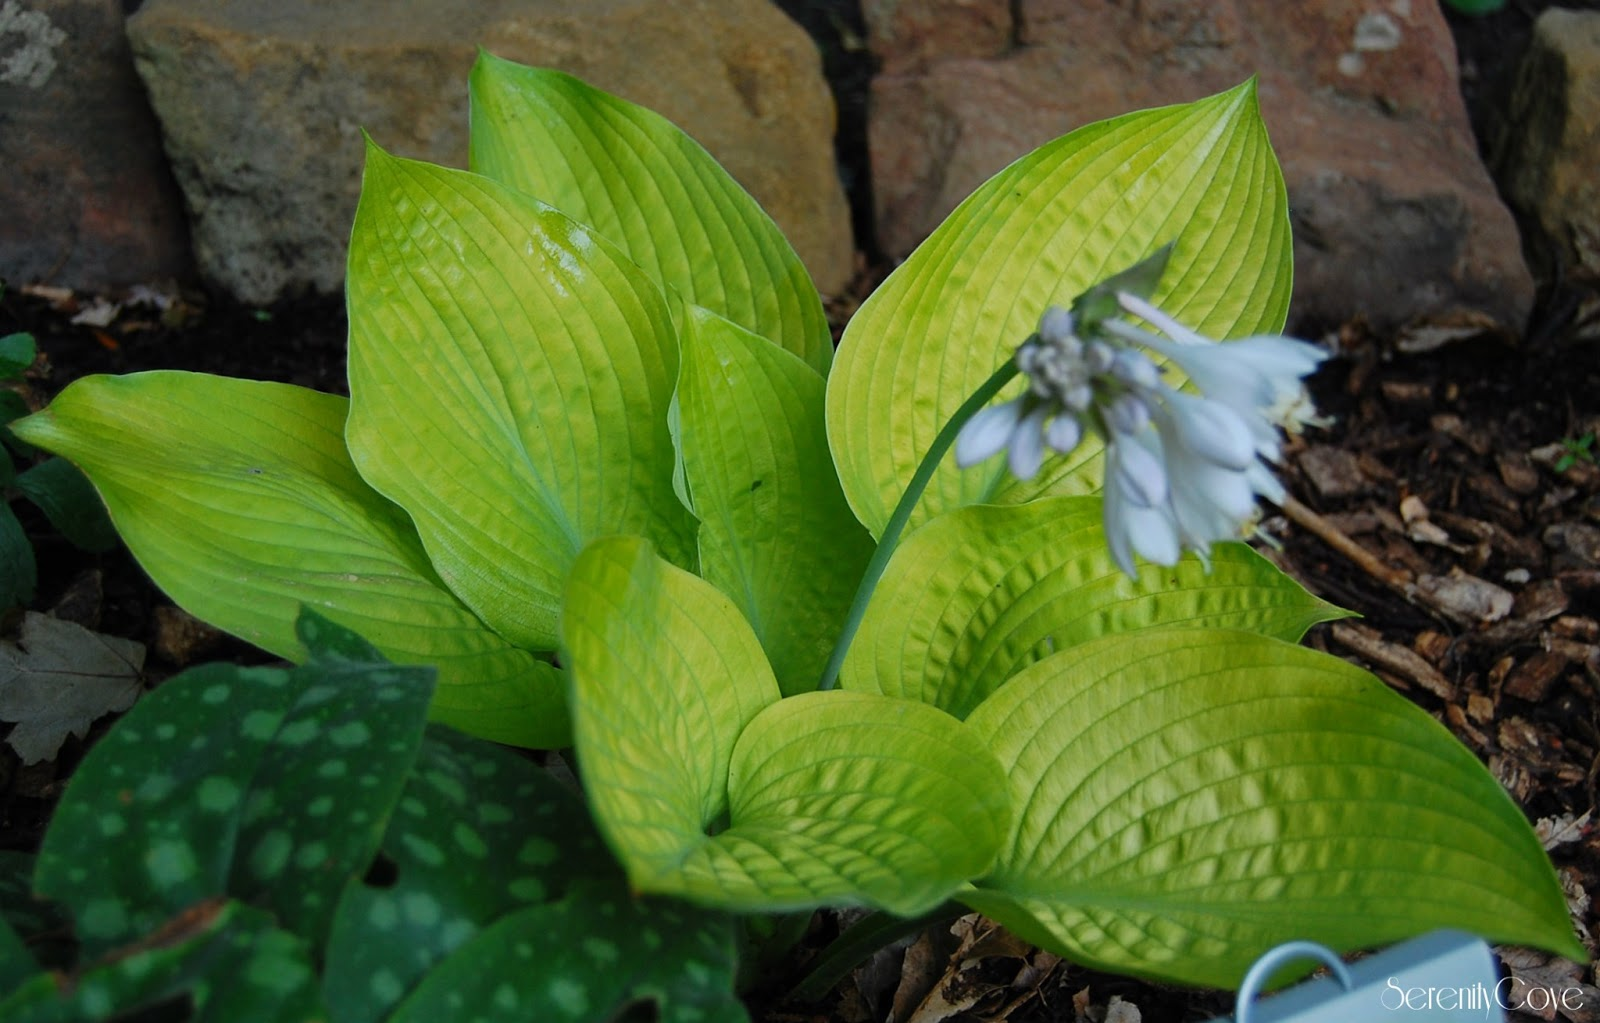 Serenity cove ten of my favorite hosta 39 s - Olive garden bailey s crossroads ...